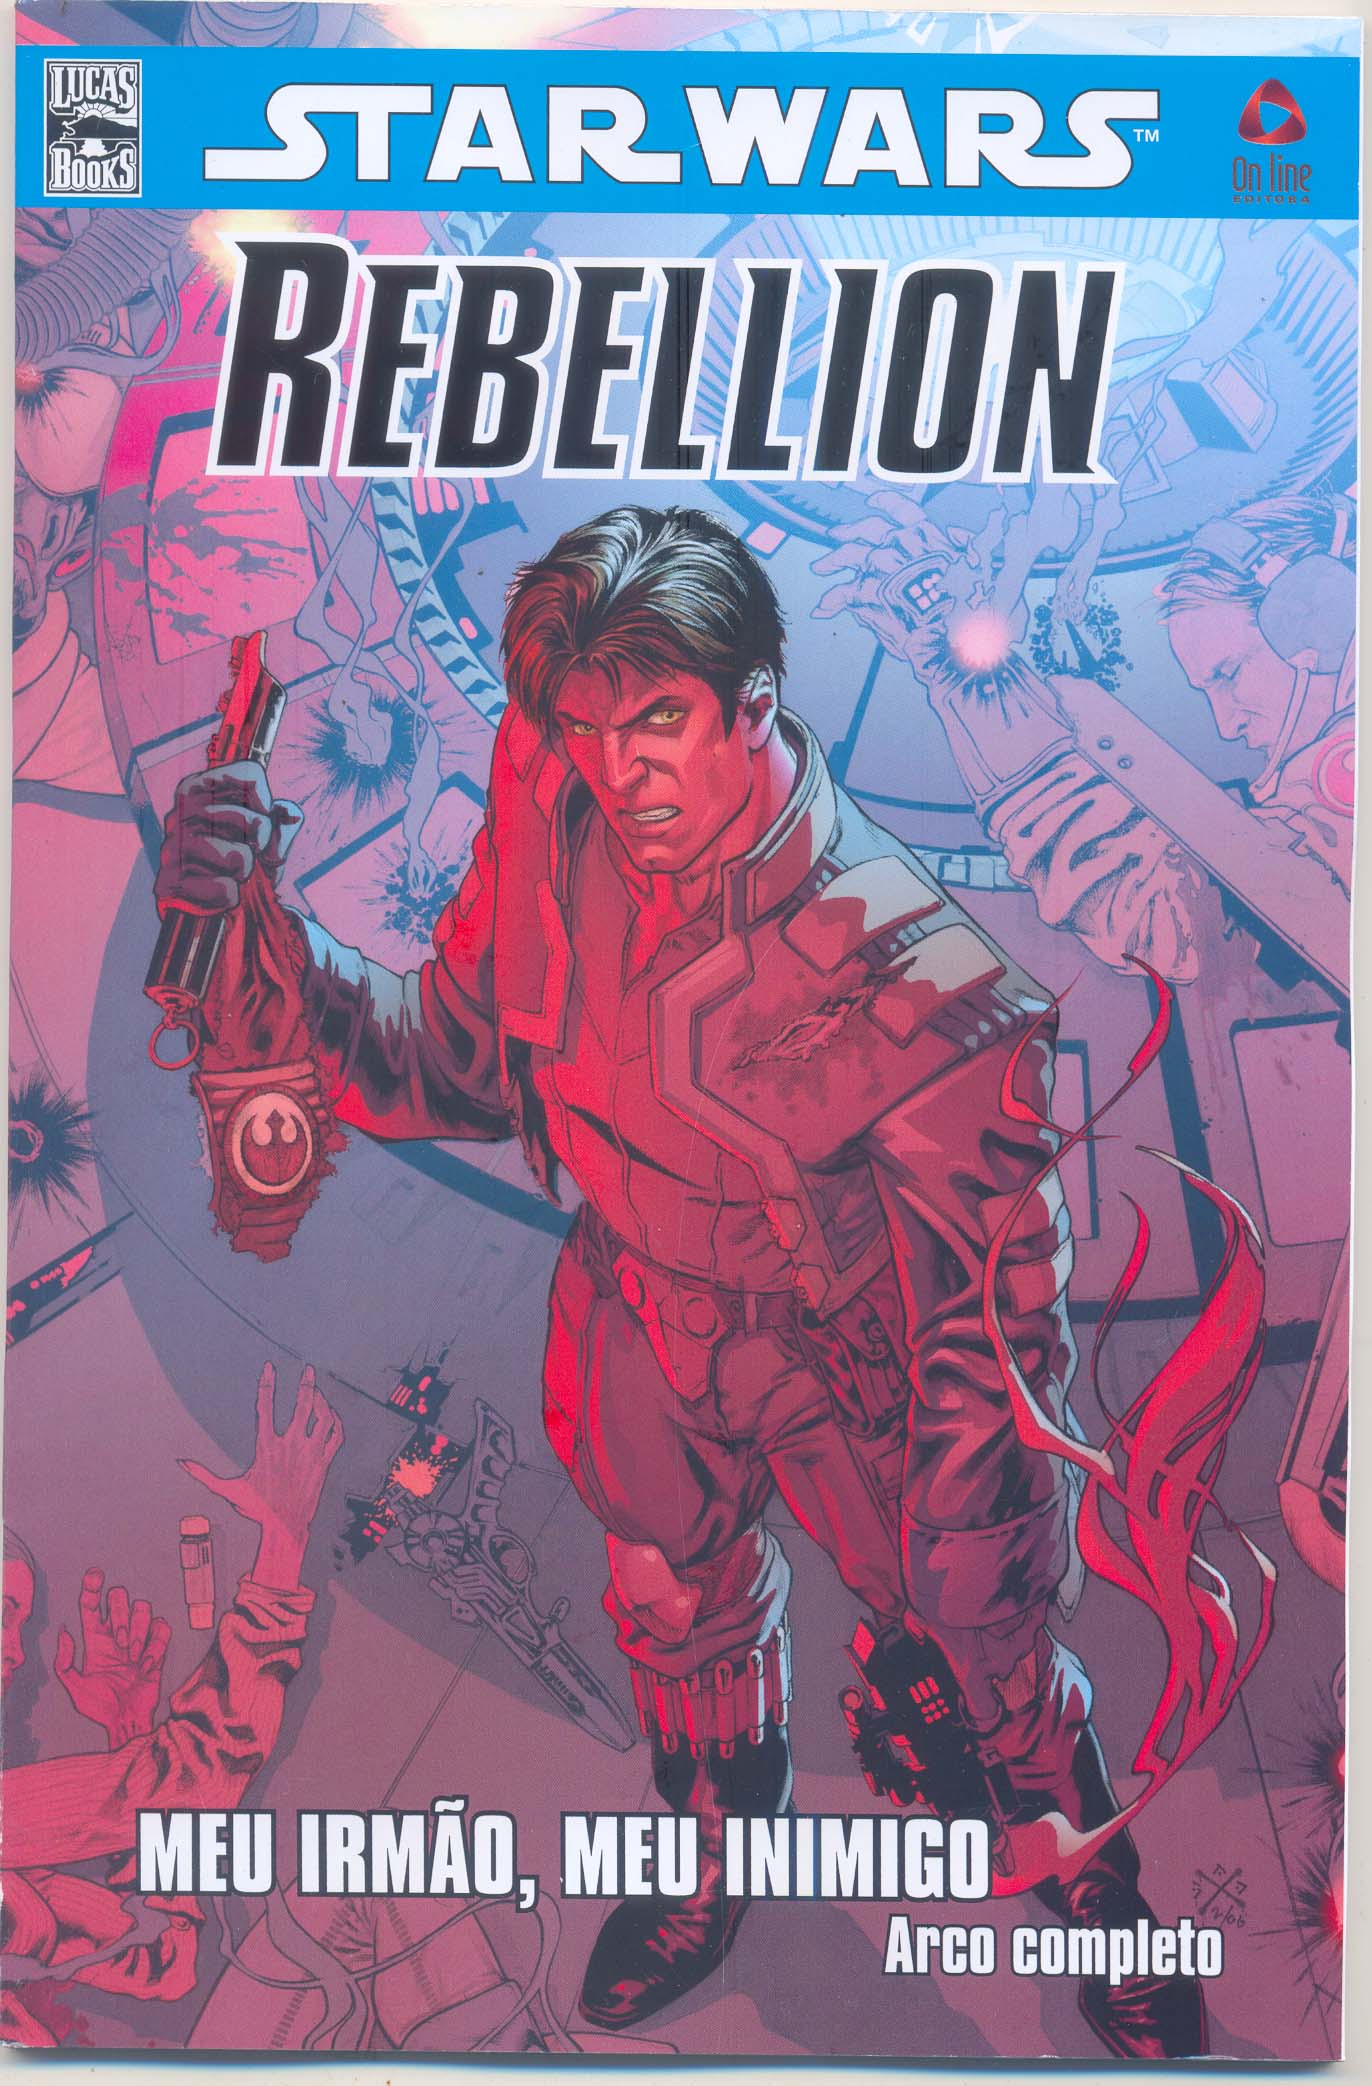 STAR WARS - REBELION nº01 - ARCO COMPLETO - ON LINE